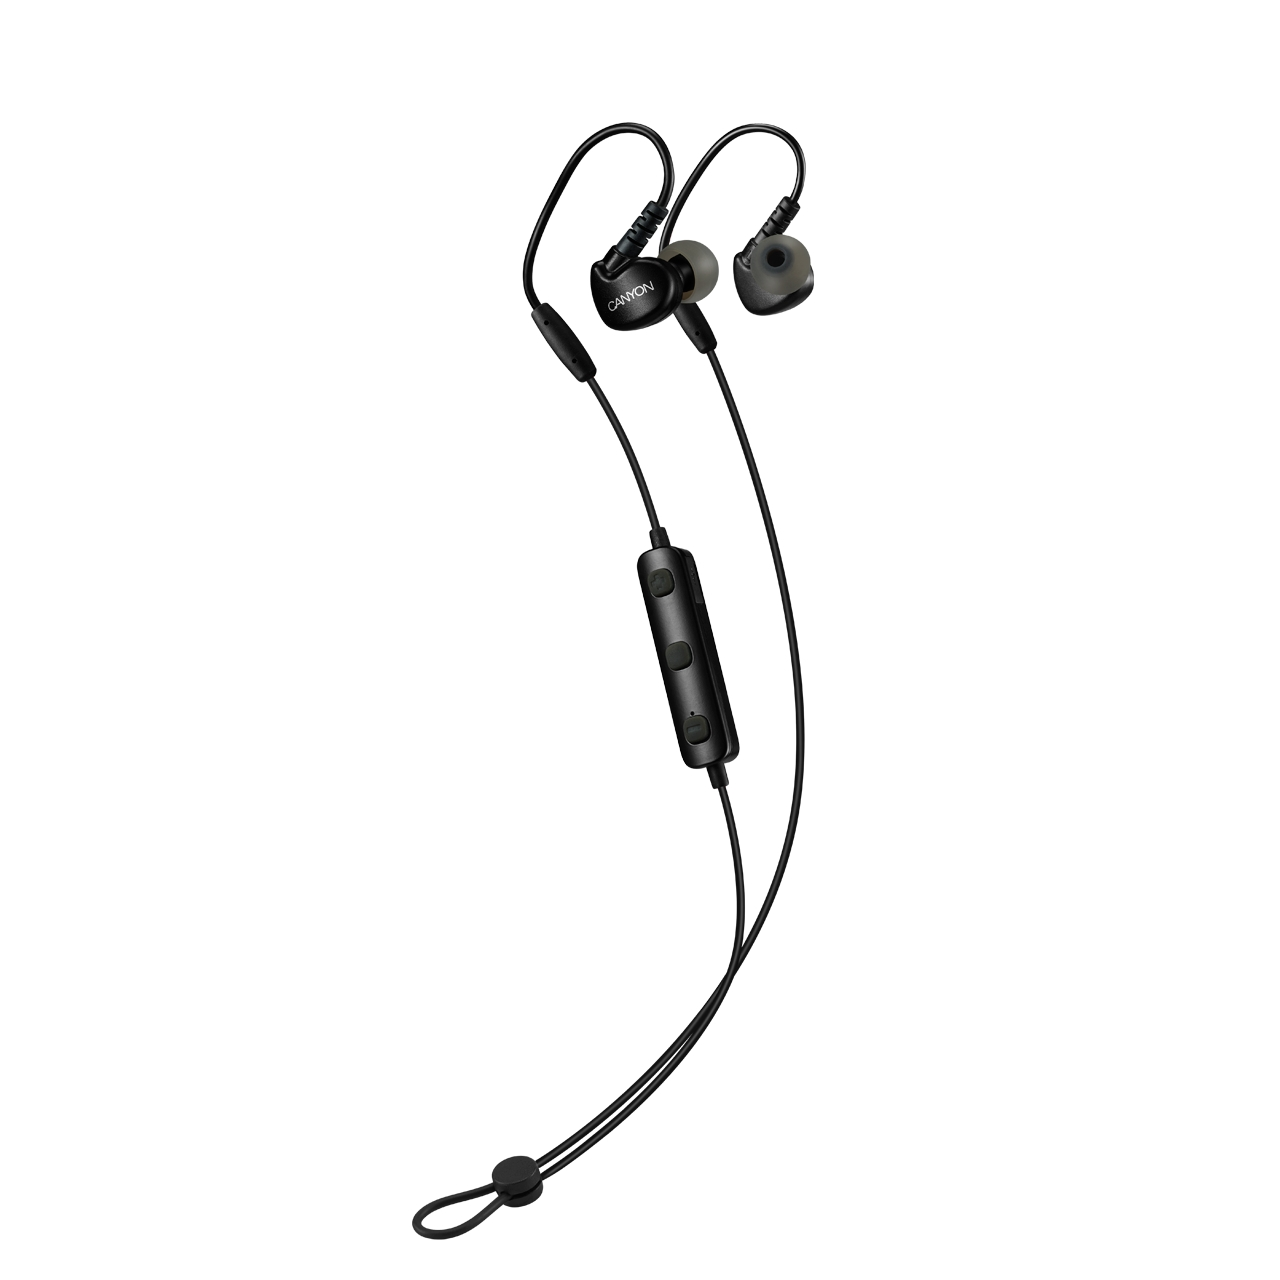 Наушники Canyon Bluetooth sport earphones with microphone black (H2CNSSBTHS1B)